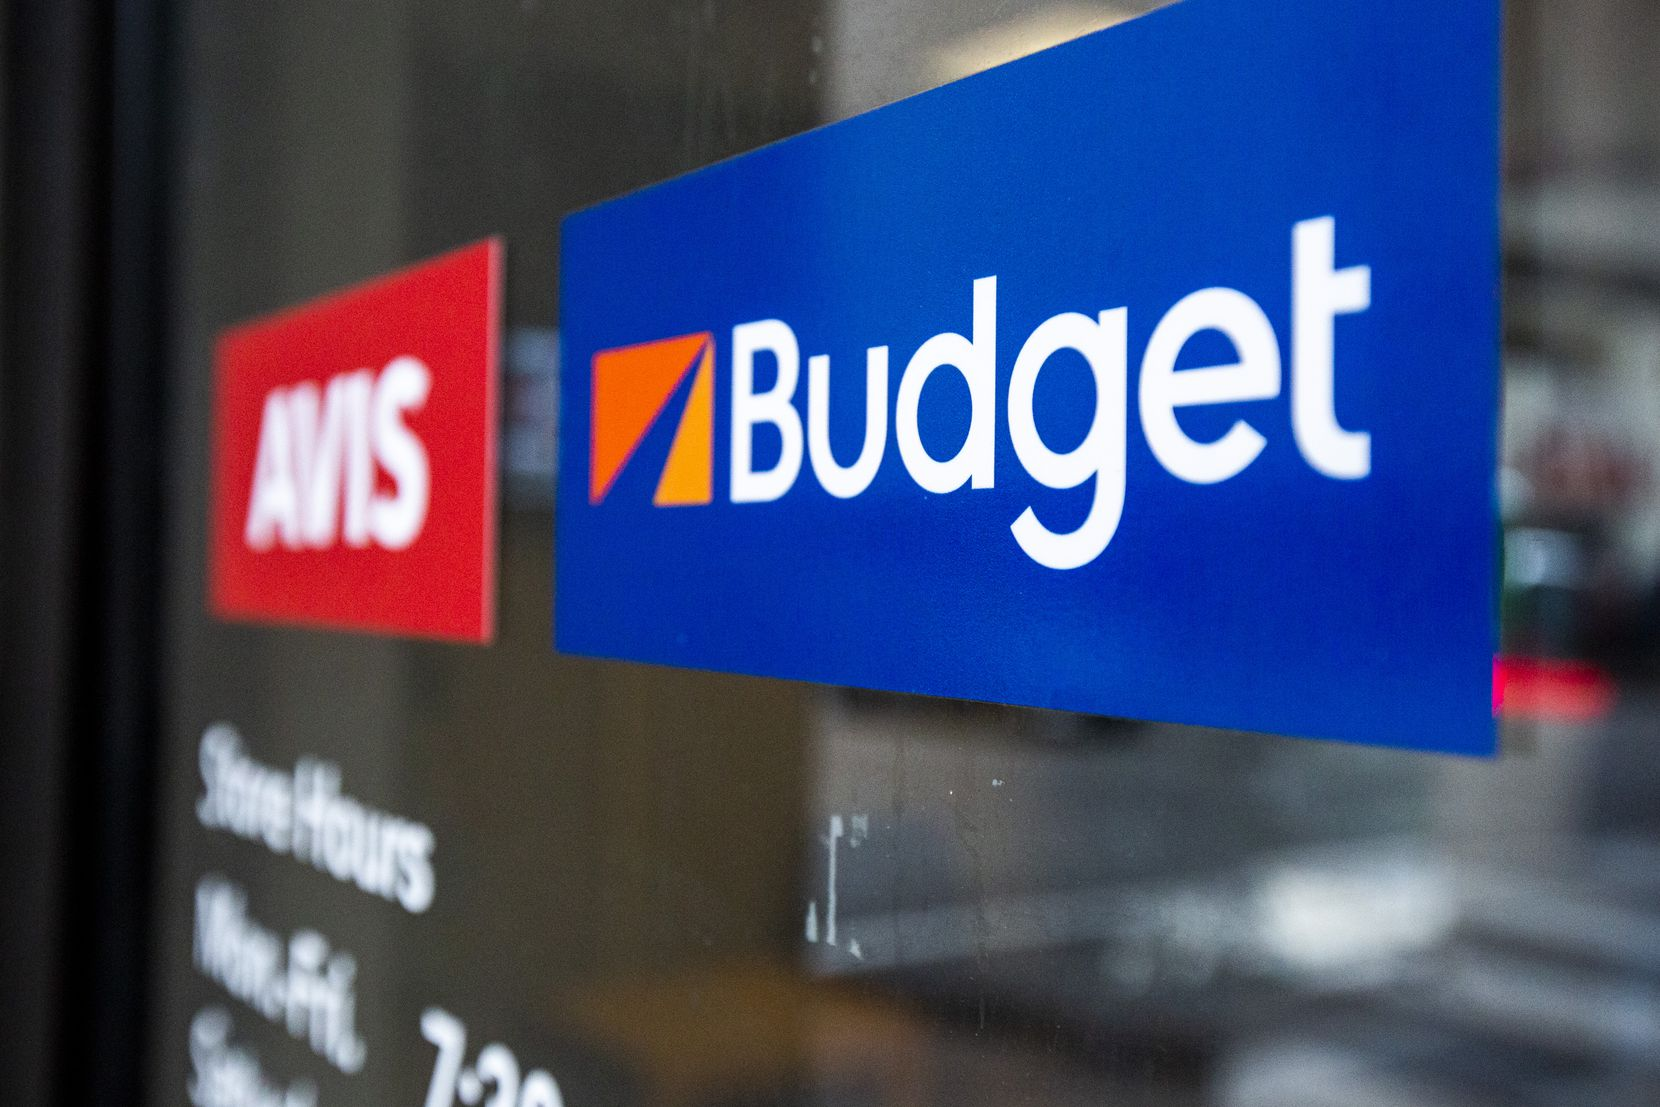 The Budget and Avis office in downtown Dallas on Thursday, Feb. 13, 2020. (Lynda M. Gonzalez/The Dallas Morning News)